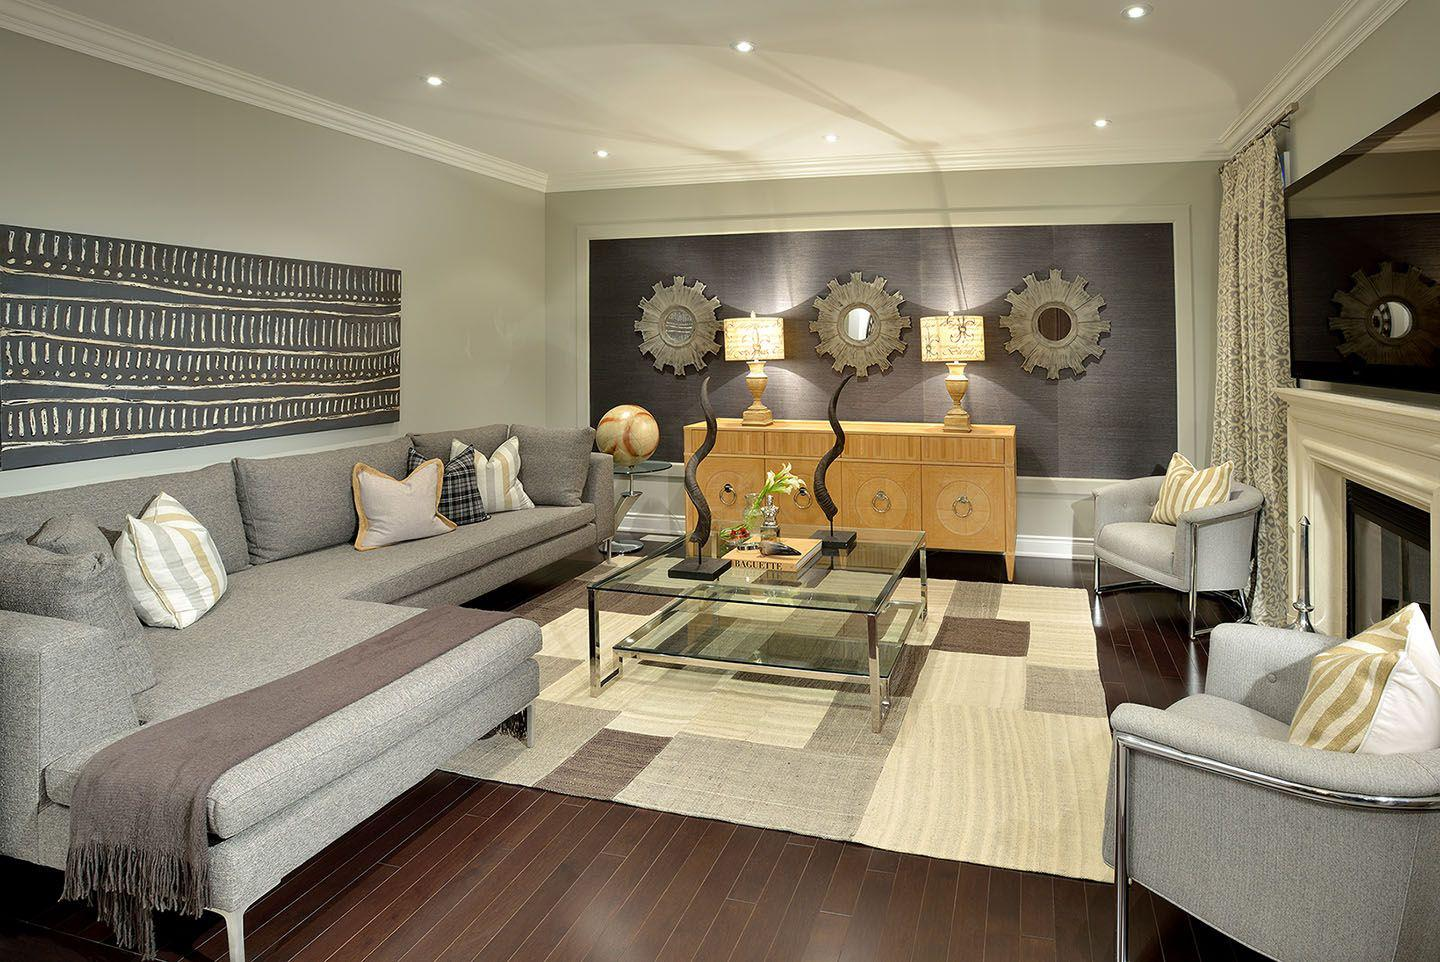 5 Steps To Great Room Design The Basics Of Interior